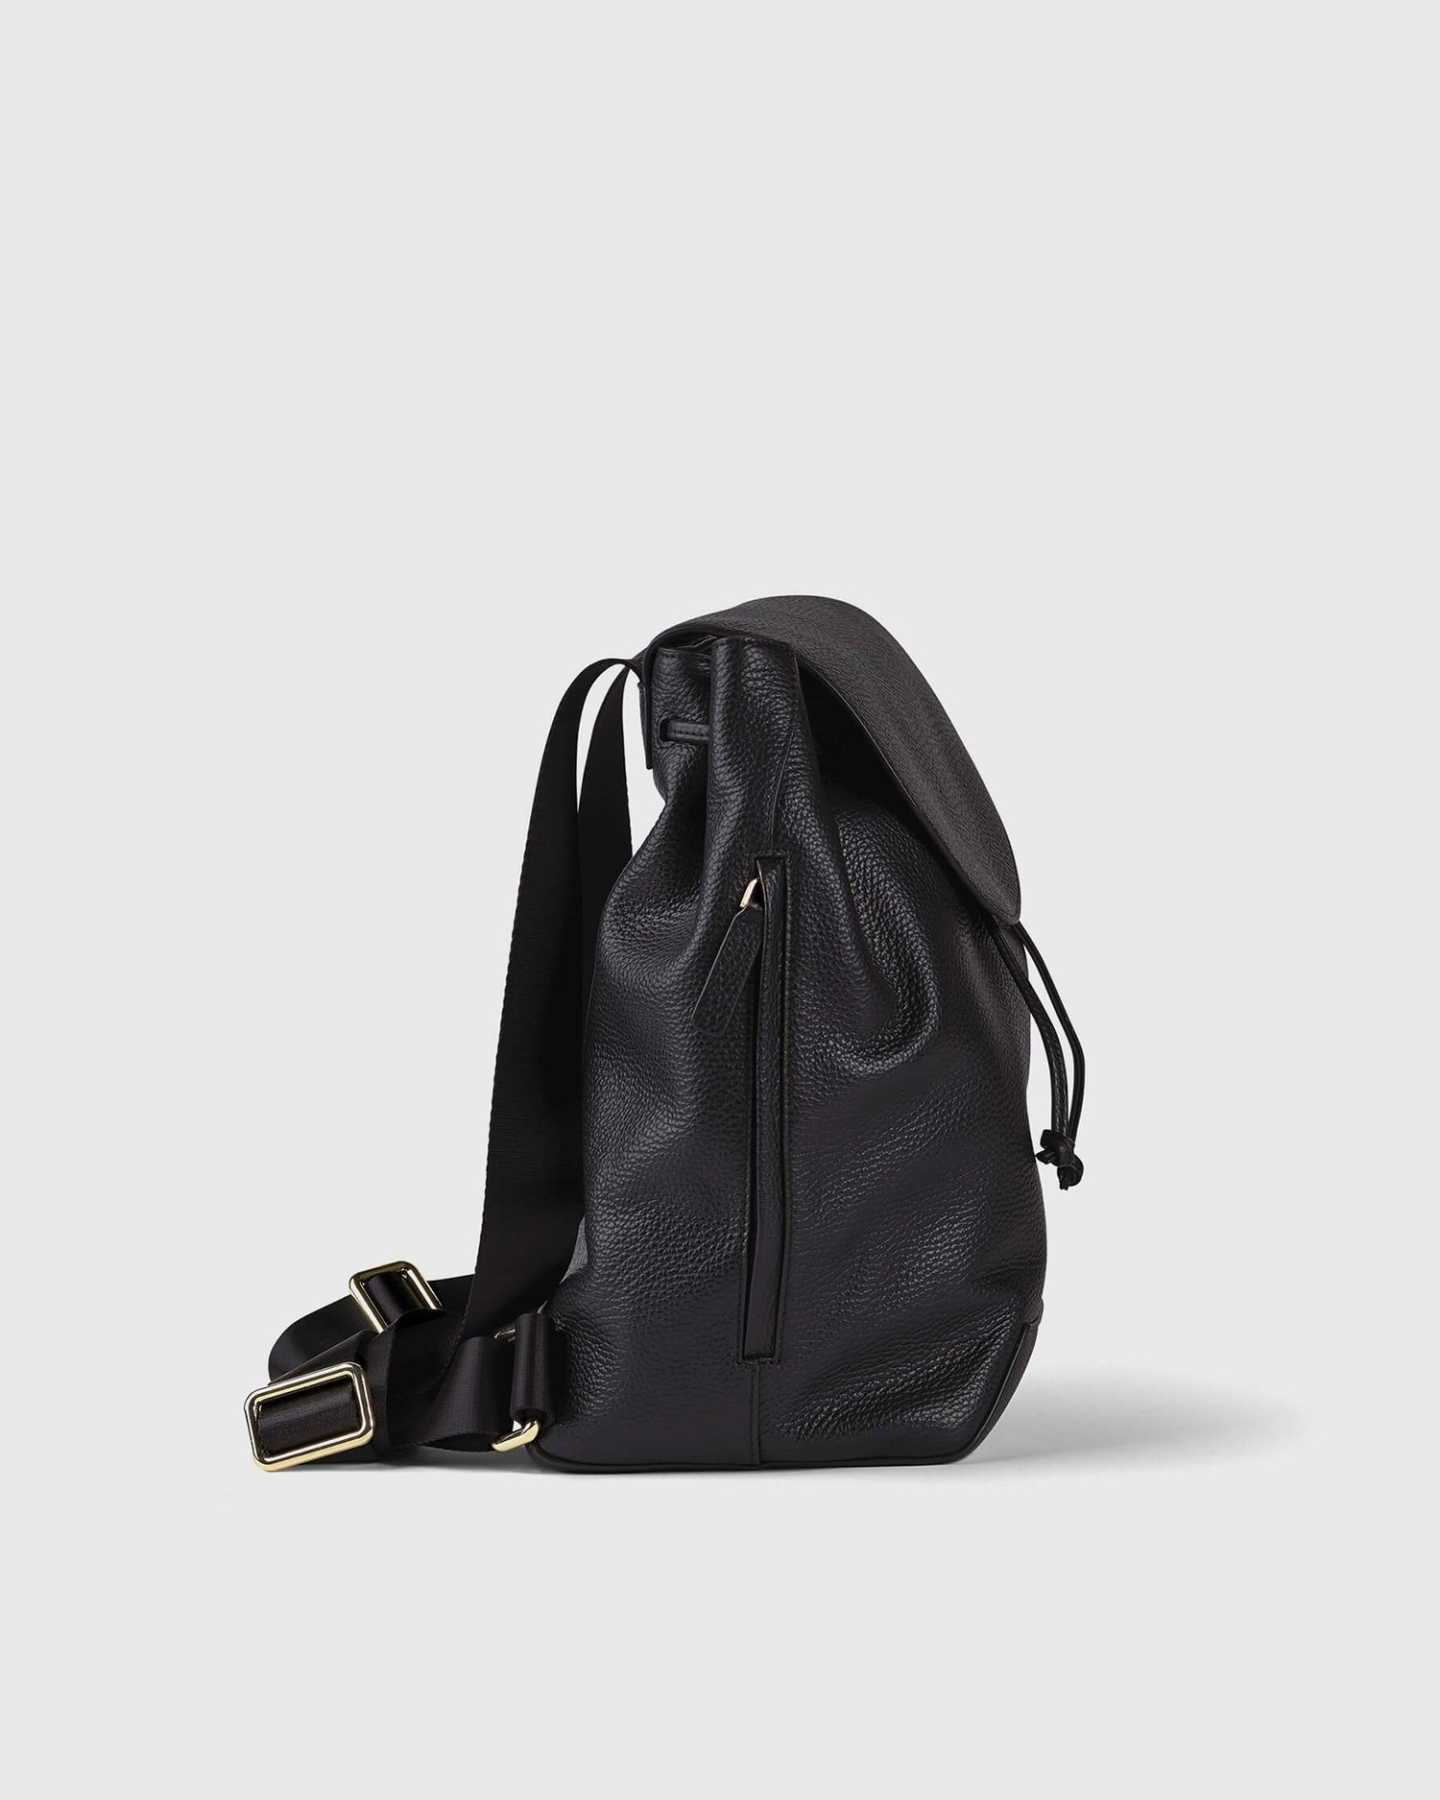 Italian Pebbled Leather Backpack - 13790590042223